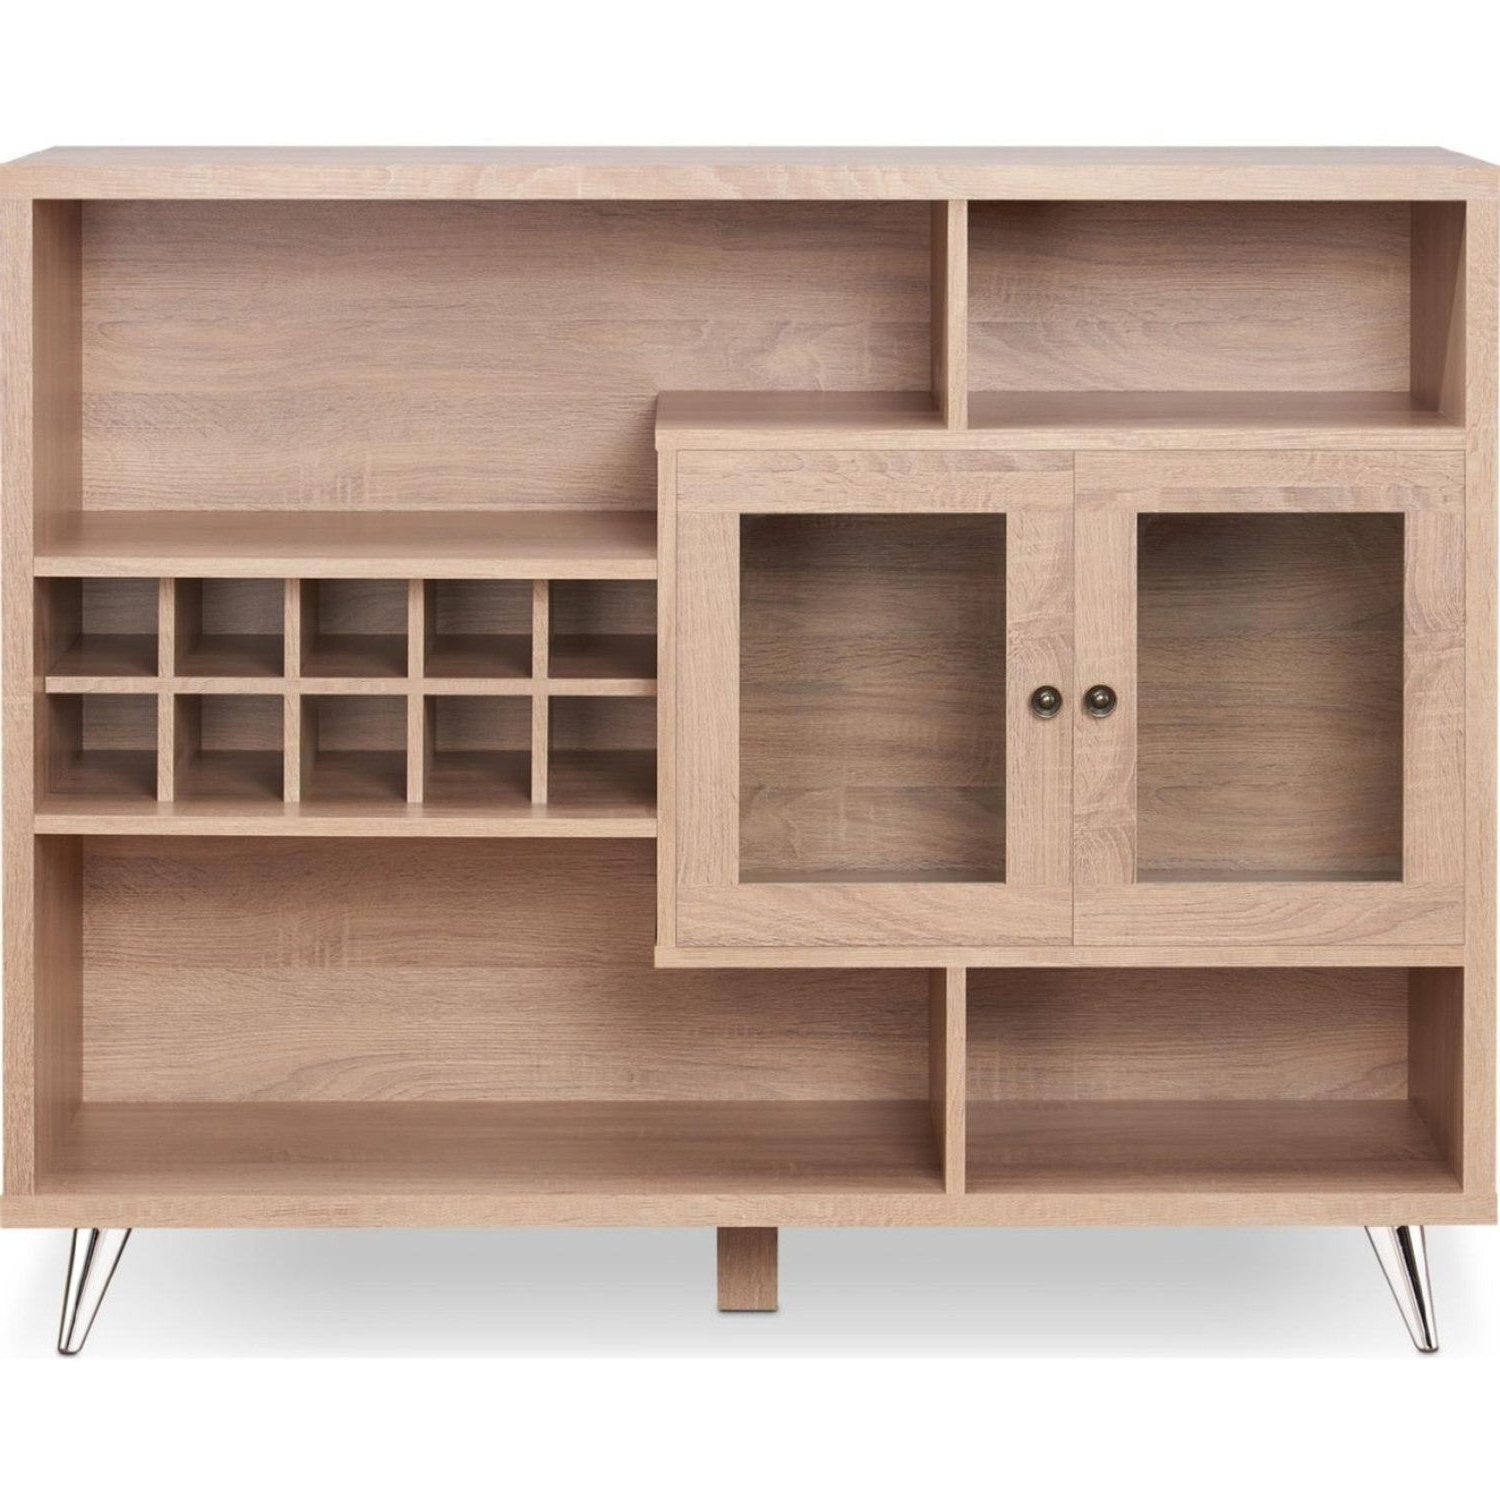 Featured Photo of Contemporary Wooden Buffets With Four Open Compartments And Metal Tapered Legs